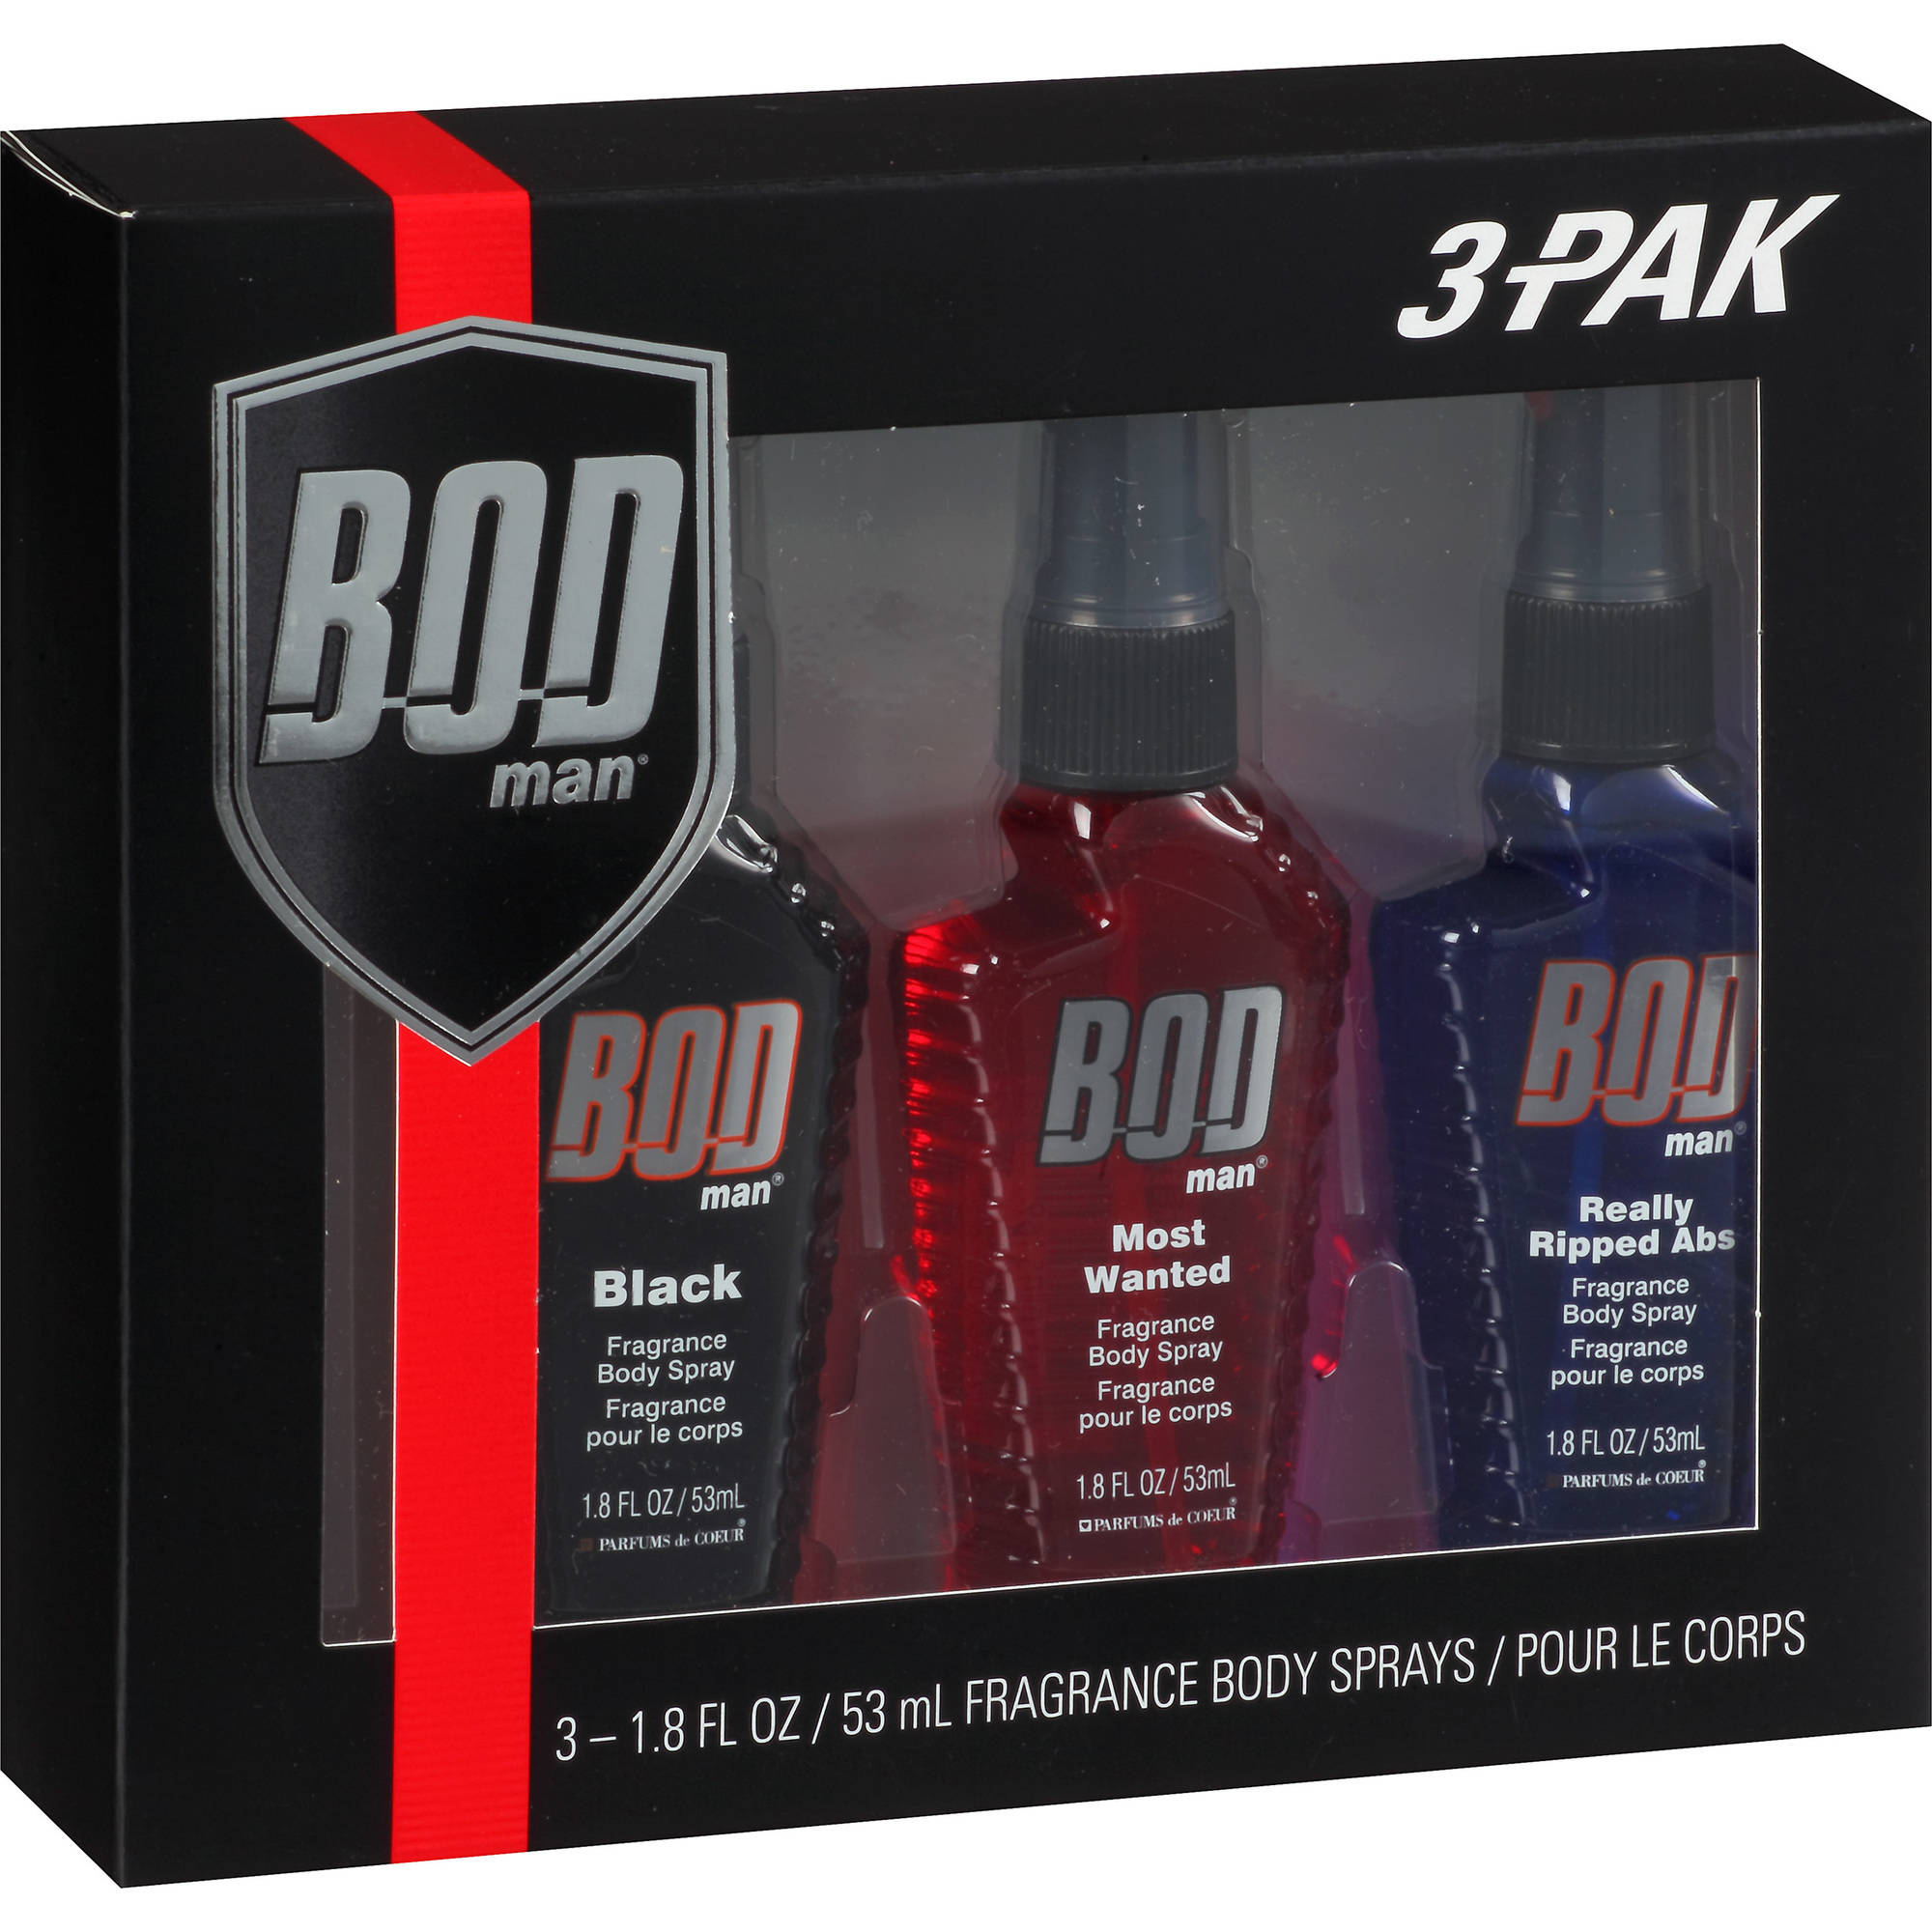 BOD Man Fragrance Body Sprays, 1.8 fl oz, 3 count